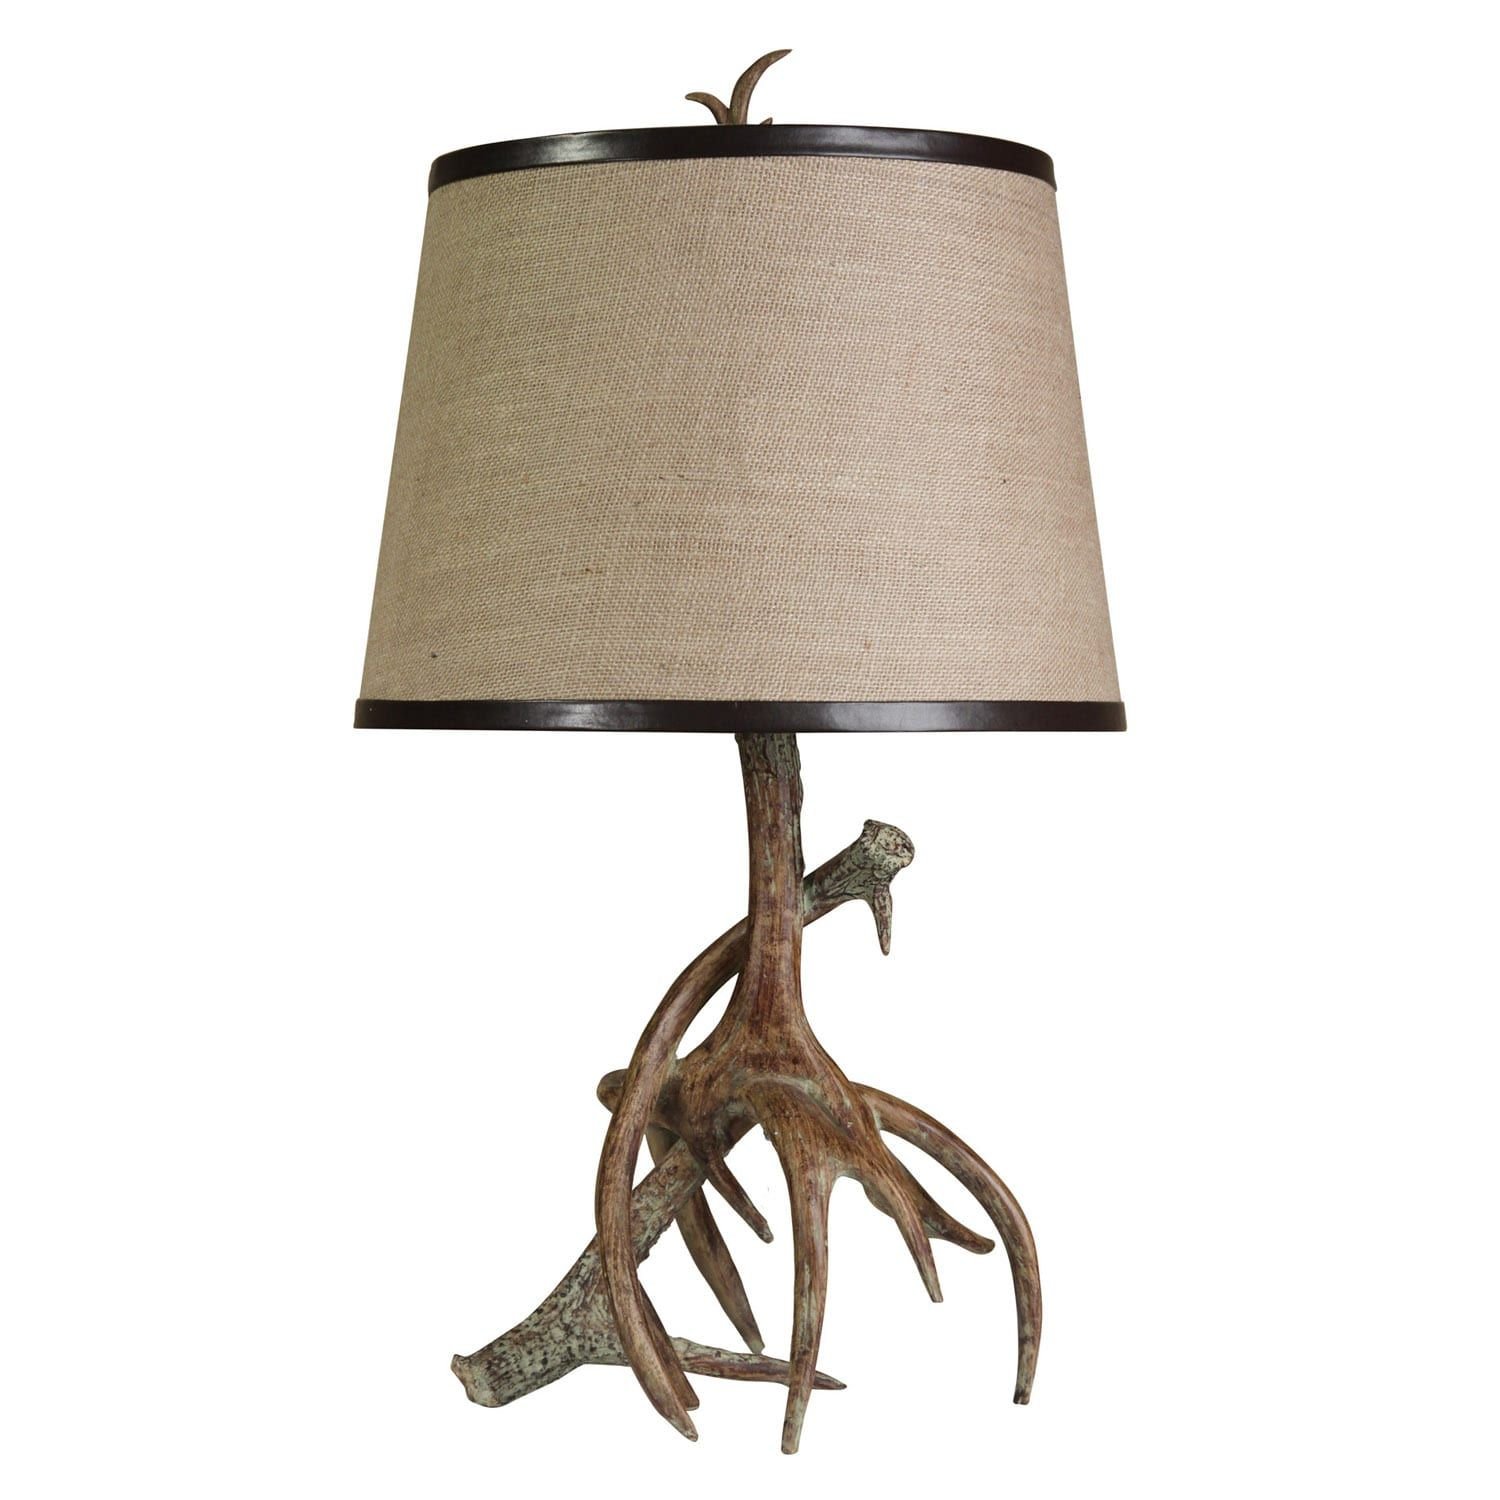 Rustic Table Lamp | Rustic table lamps, Antler lamp, Table ...